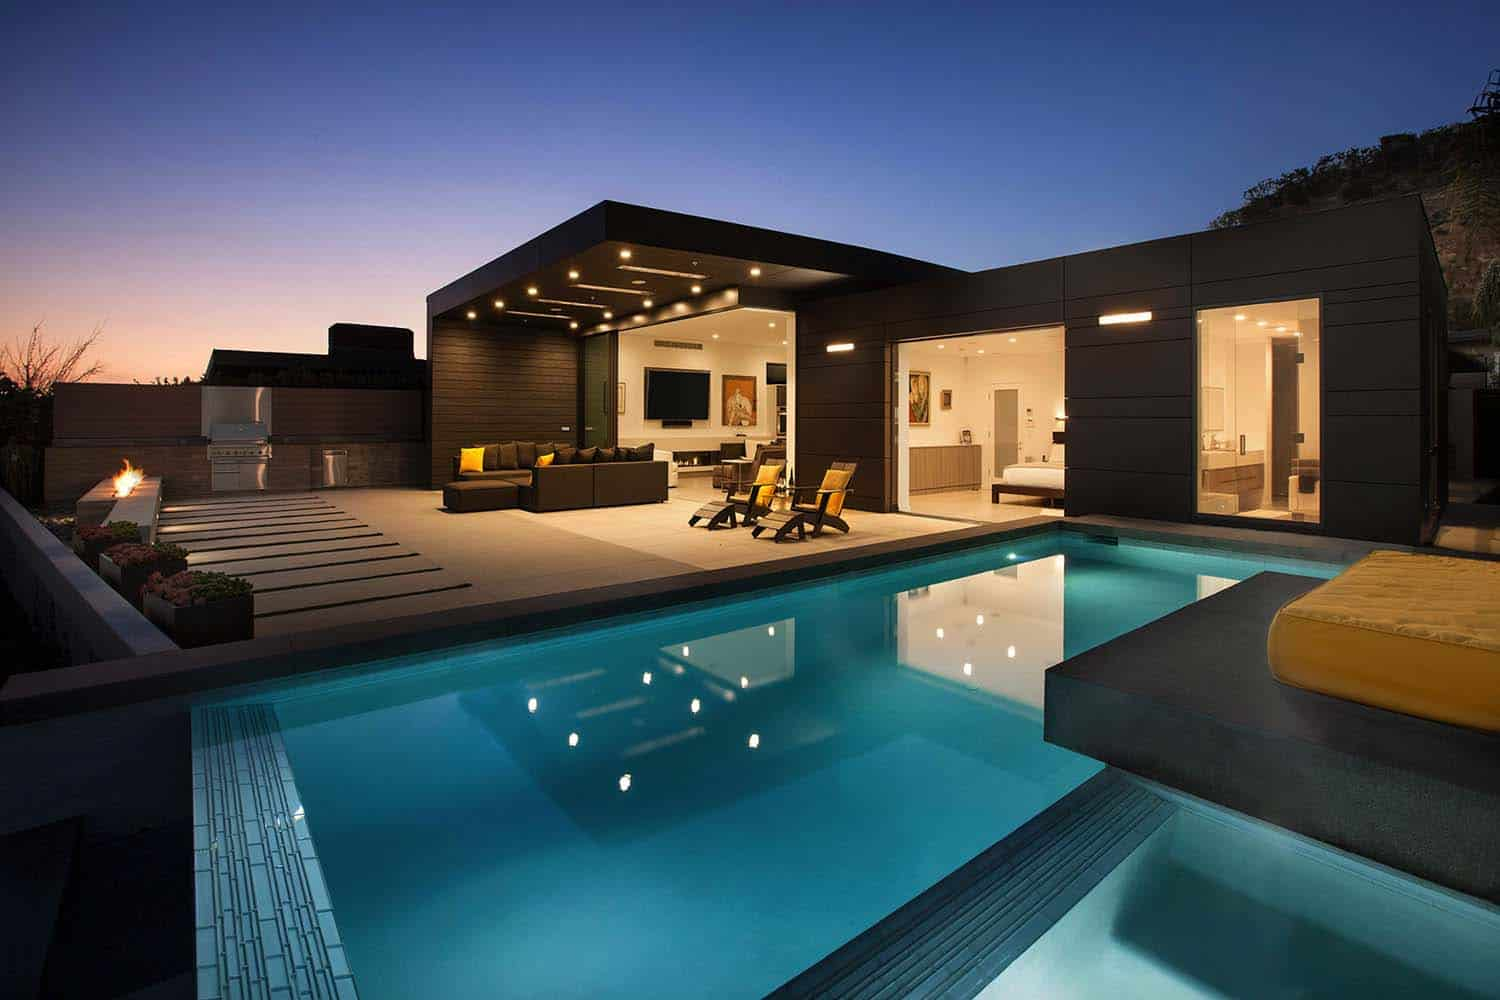 Striking Contemporary Home-Abramson Teiger Architects-03-1 Kindesign